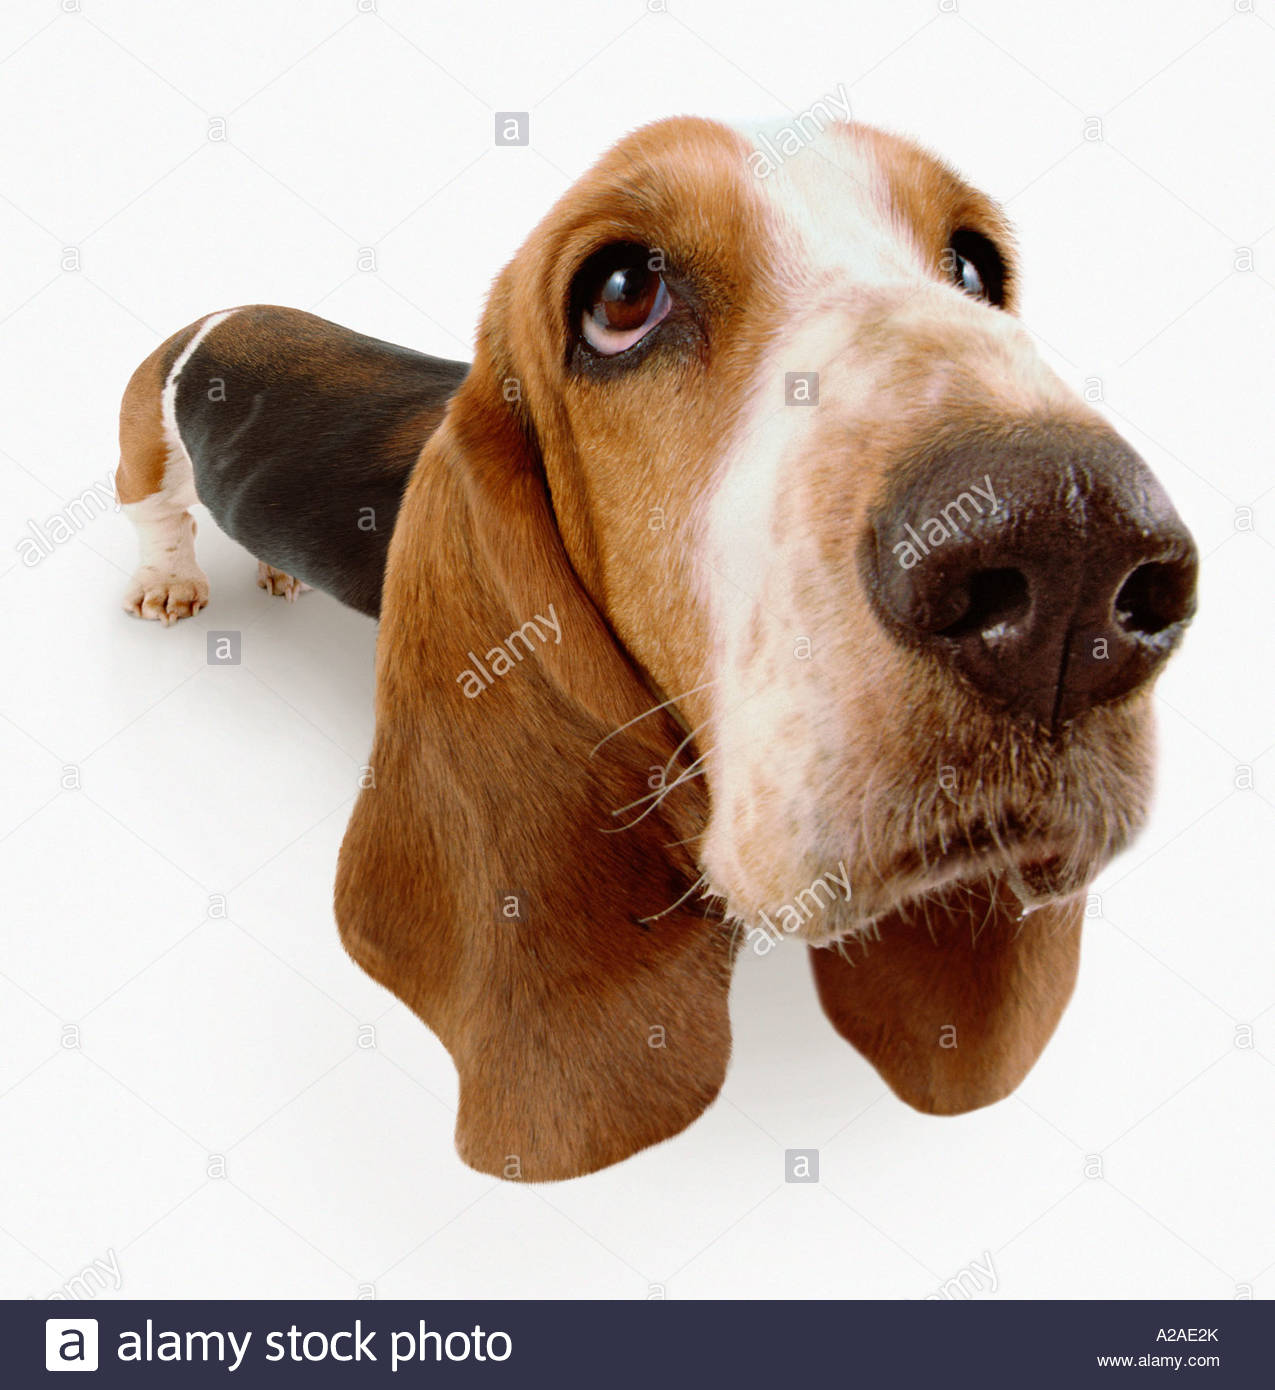 Wide-angle close up a Basset Hound looking mournful. White background. - Stock Image